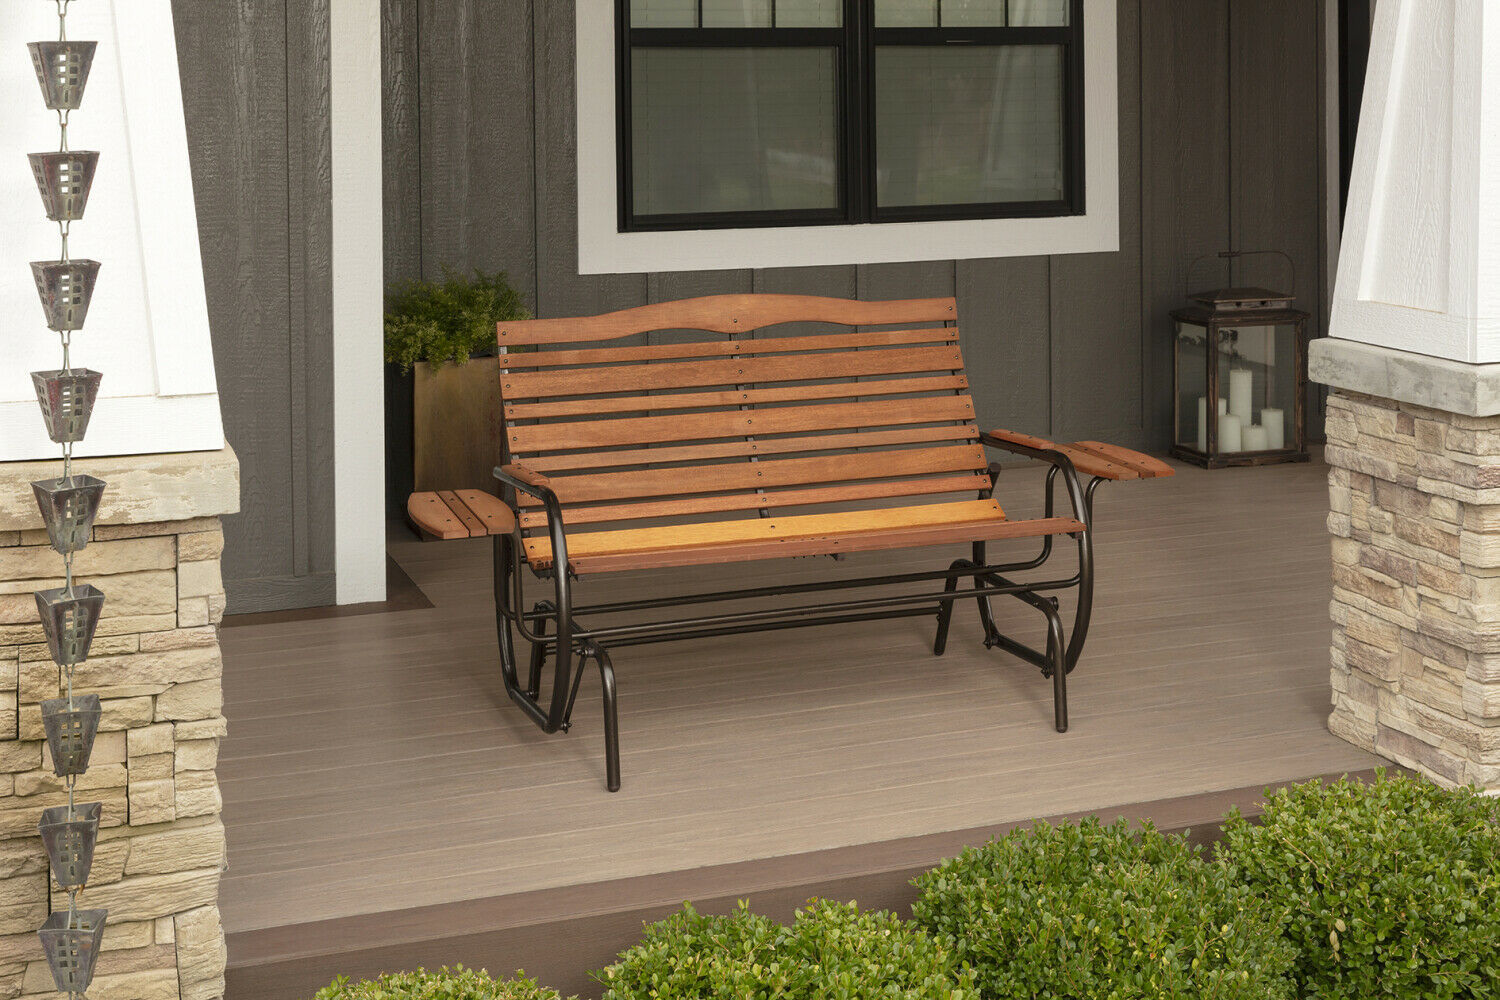 Wood Patio Bench Glider With Trays Outdoor Garden Porch Swing Chair Loveseat image 6